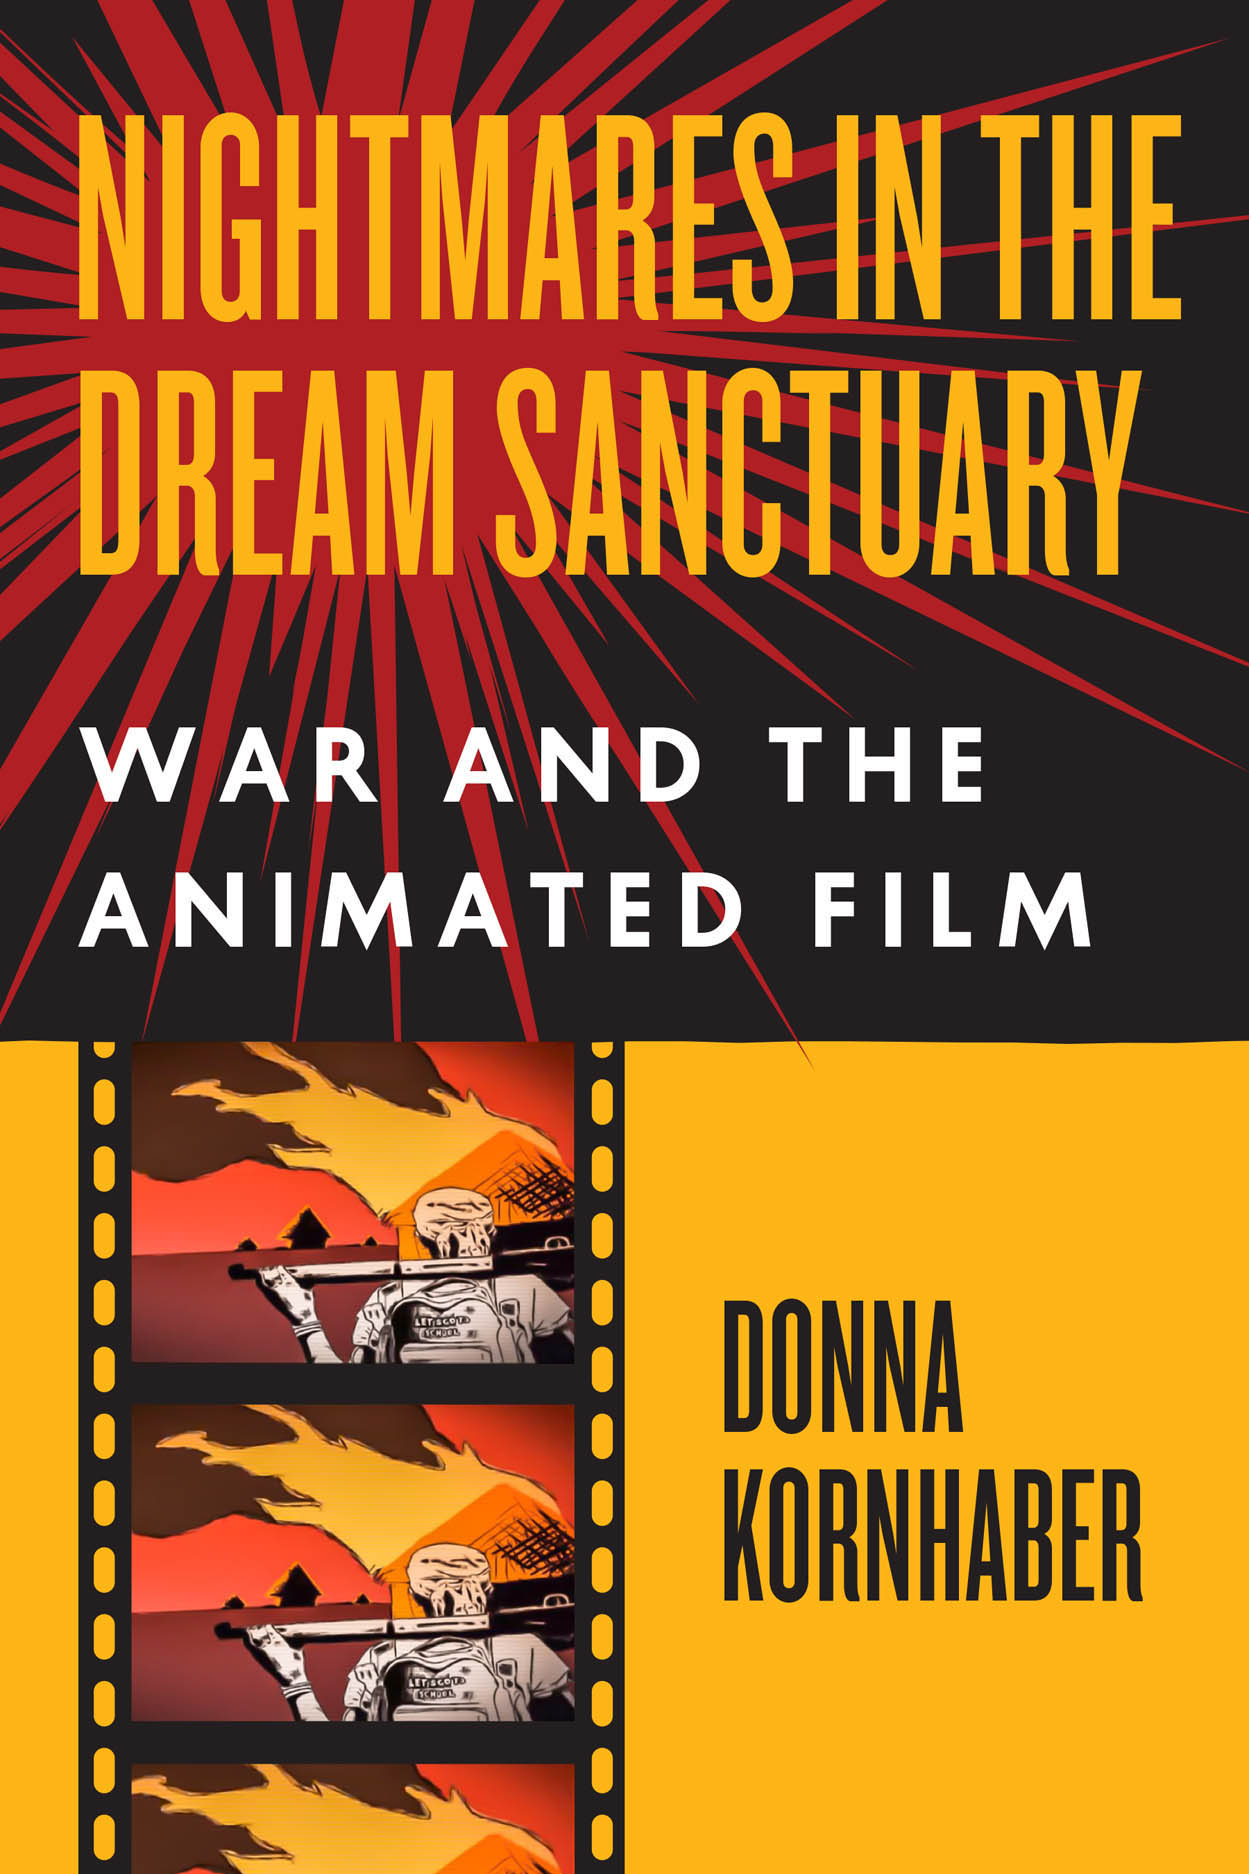 Nightmares in the Dream Sanctuary: War and the Animated Film